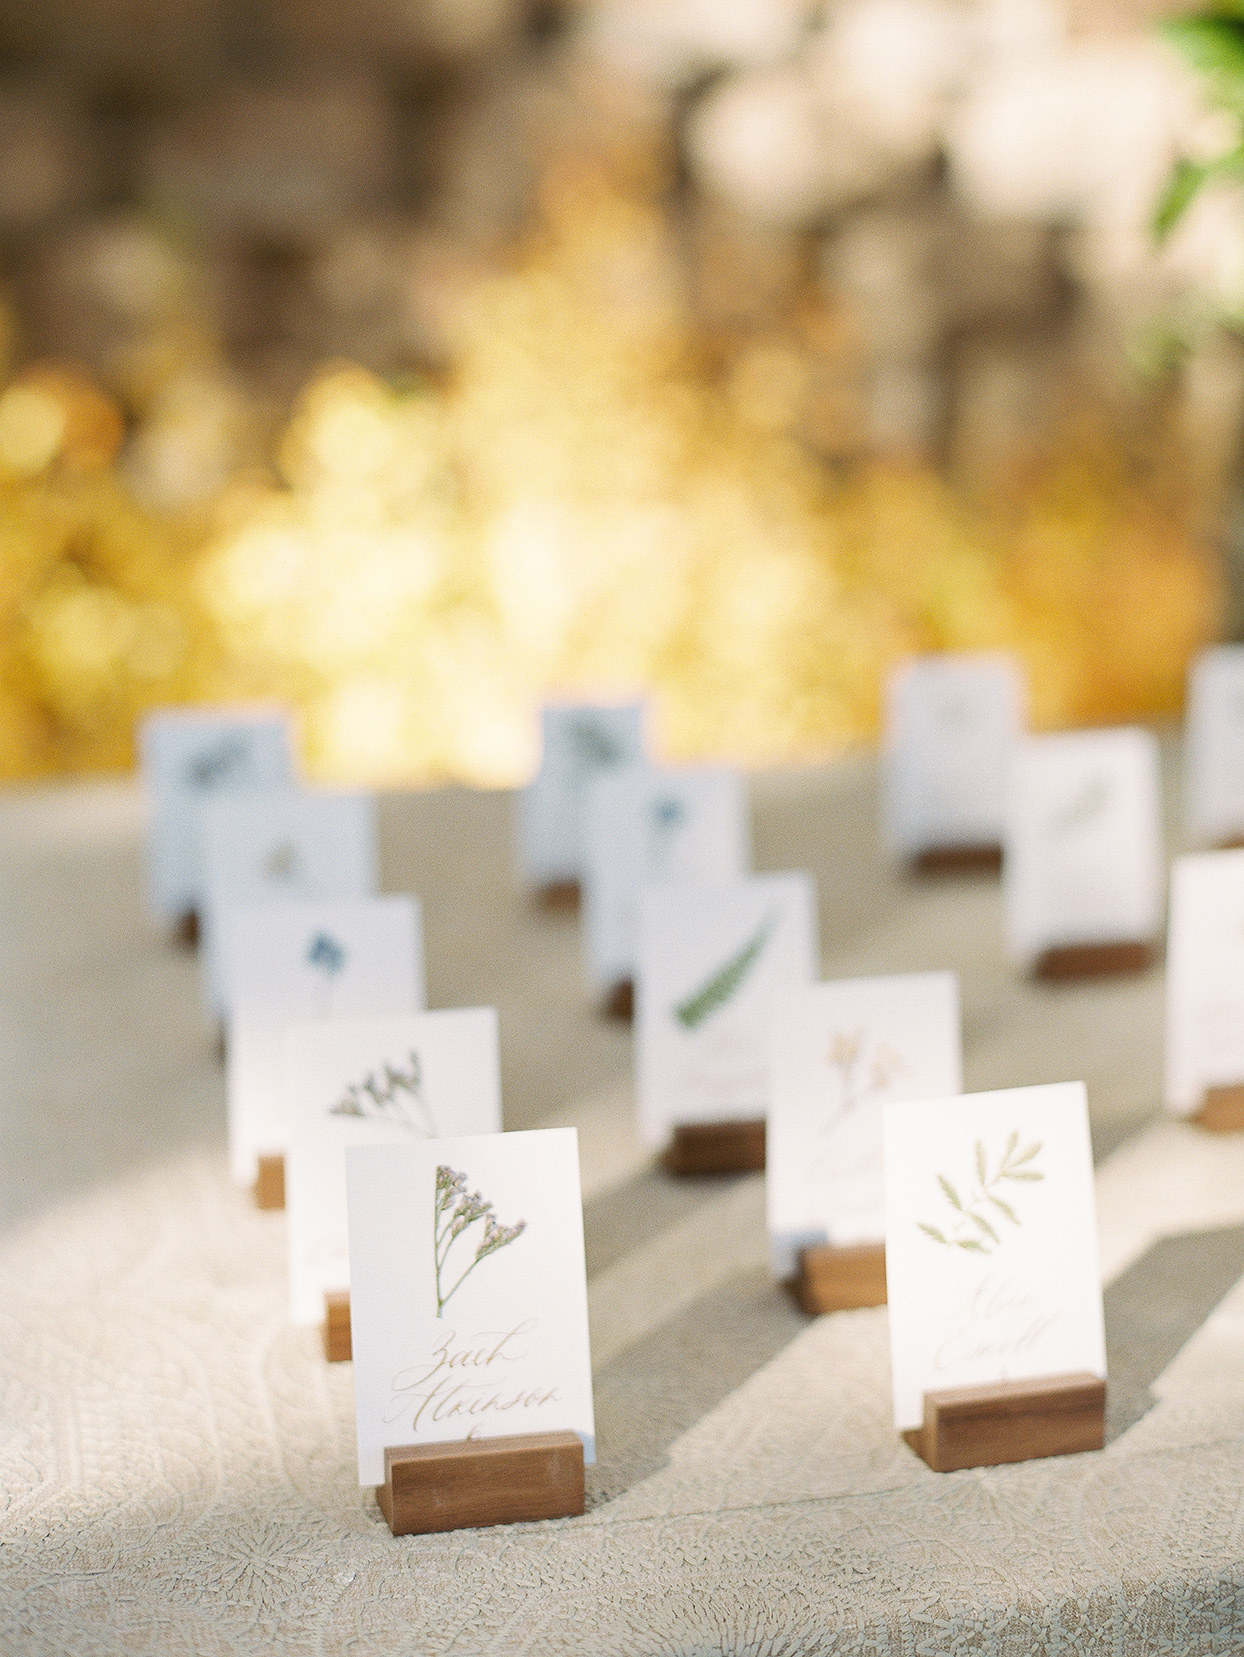 alexandra david wedding escort cards in wooden holders